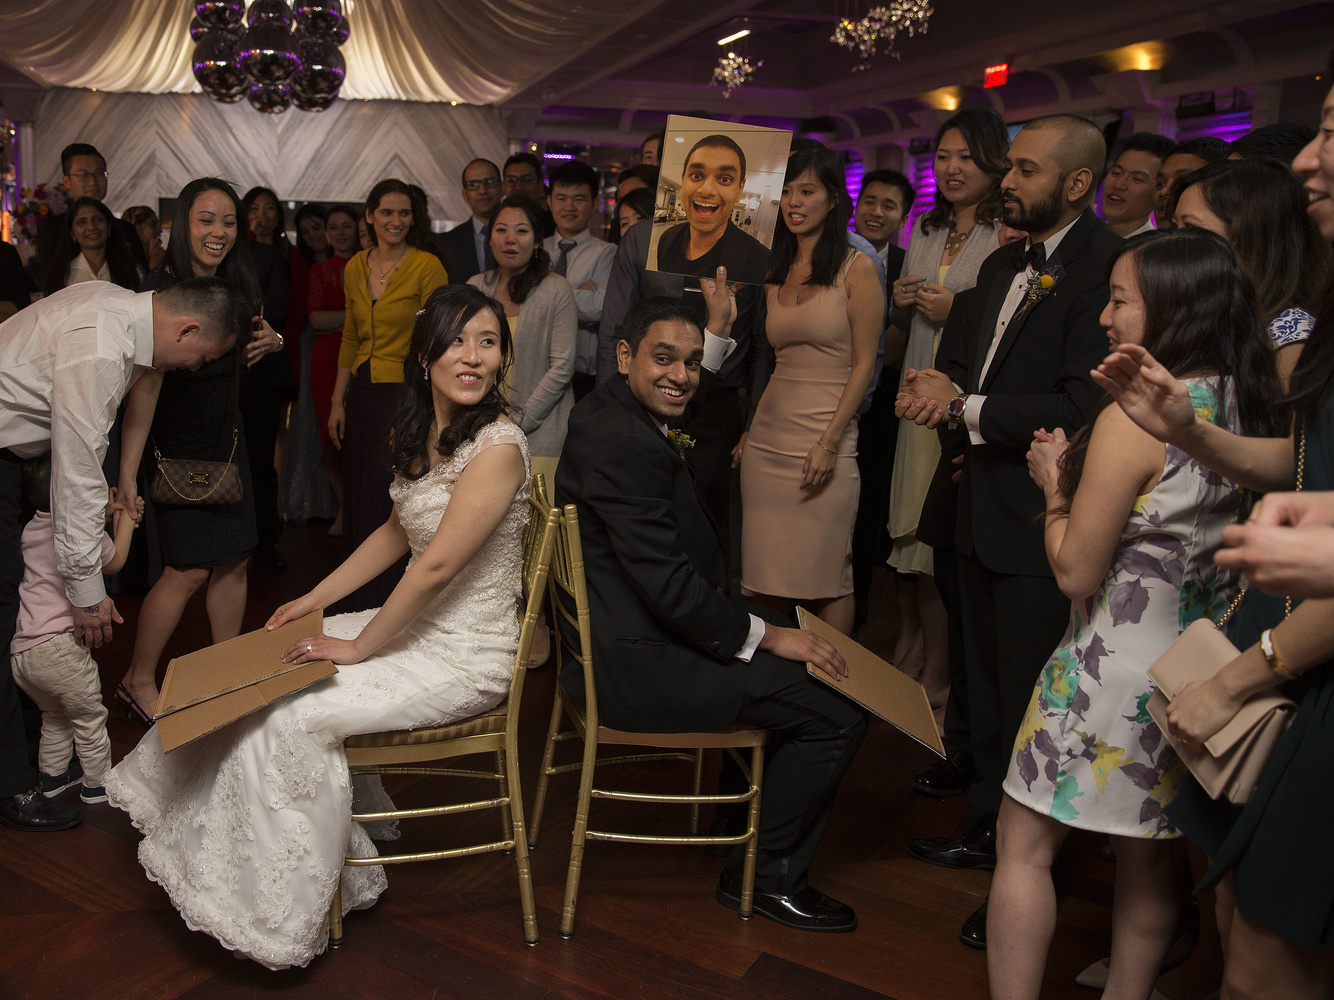 A fun moment at my brother's wedding that the photographers pulled me into because of my previously friendly interactions earlier in the day.